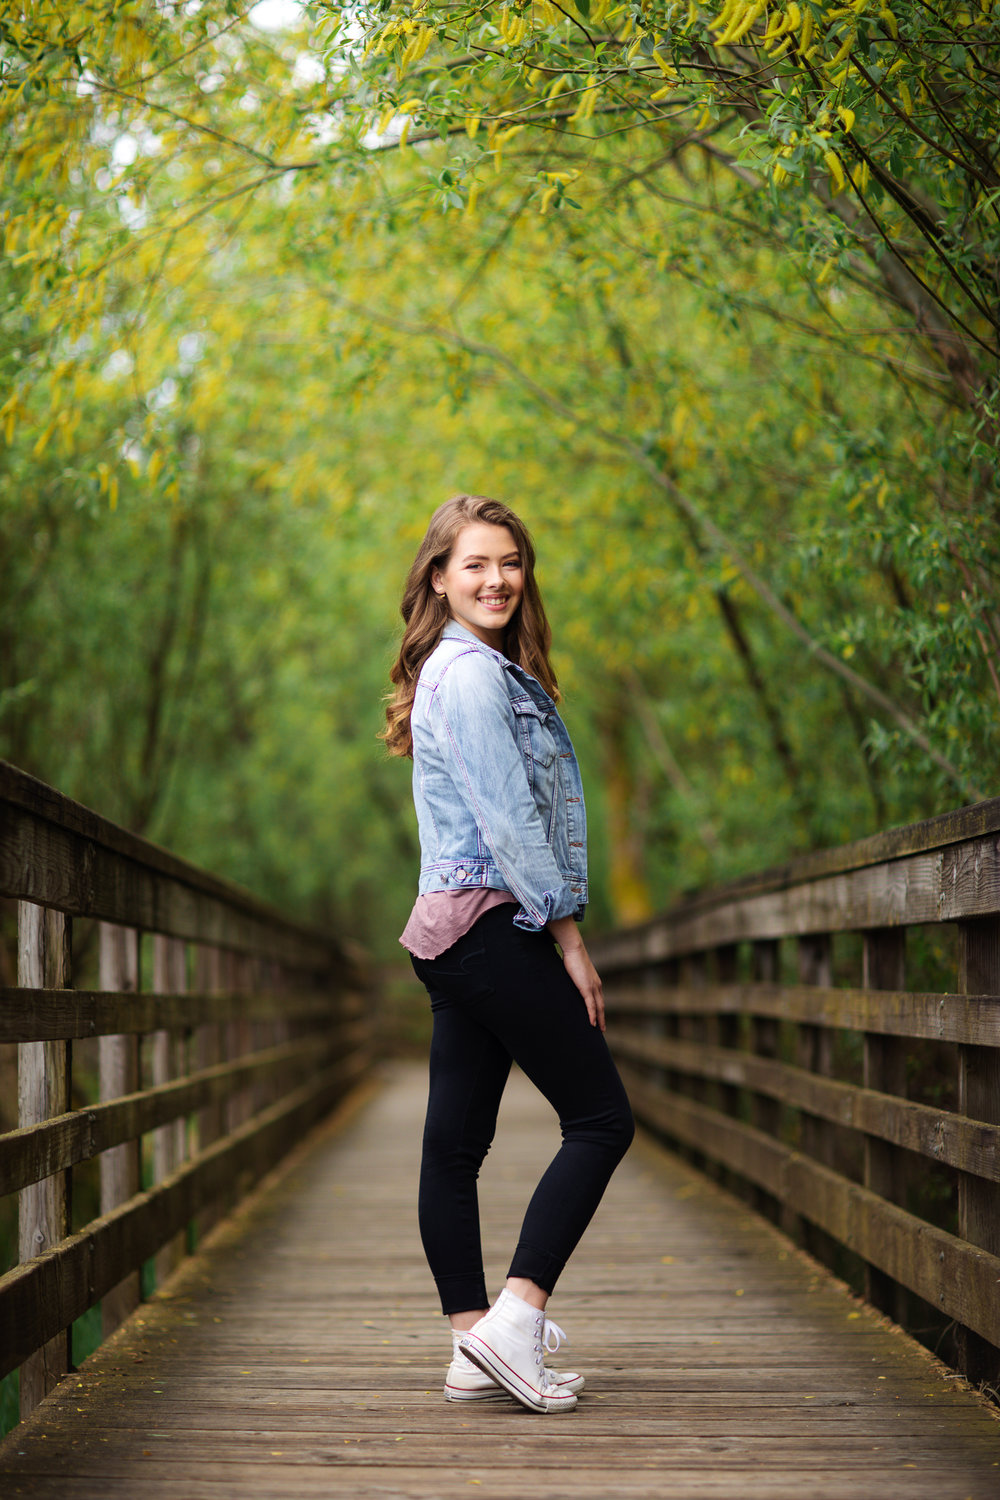 ariellanoellephotography-highschool-senior-model-rep-portraits-seattle-area-photographer-1.jpg